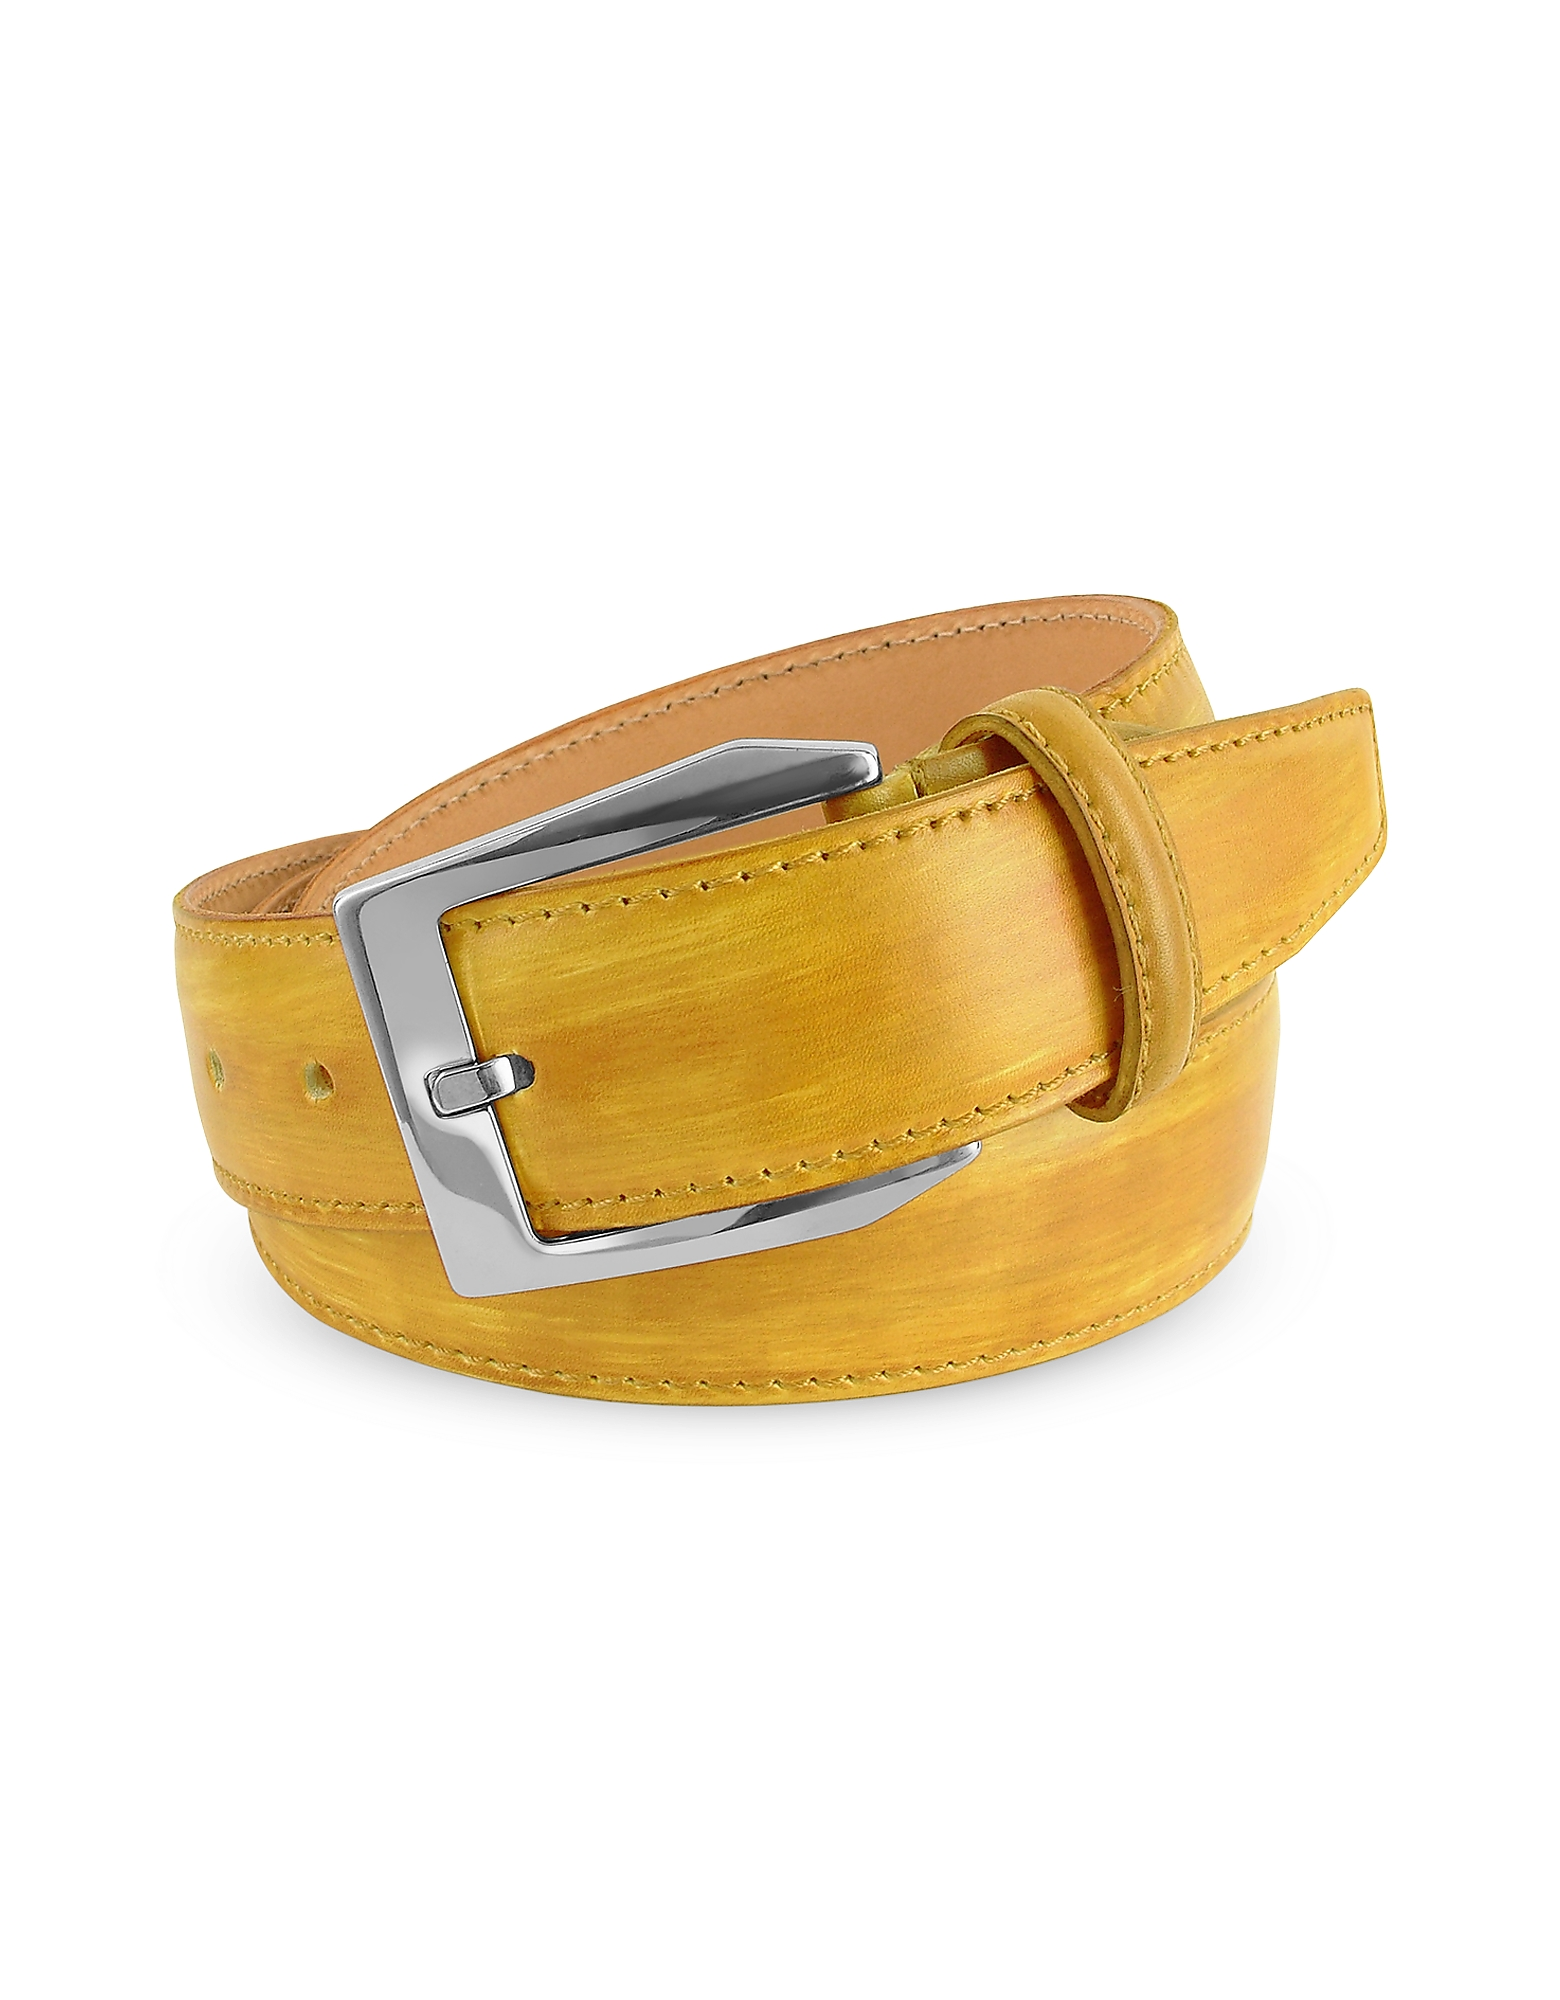 Pakerson Designer Men's Belts, Men's Yellow Hand Painted Italian Leather Belt